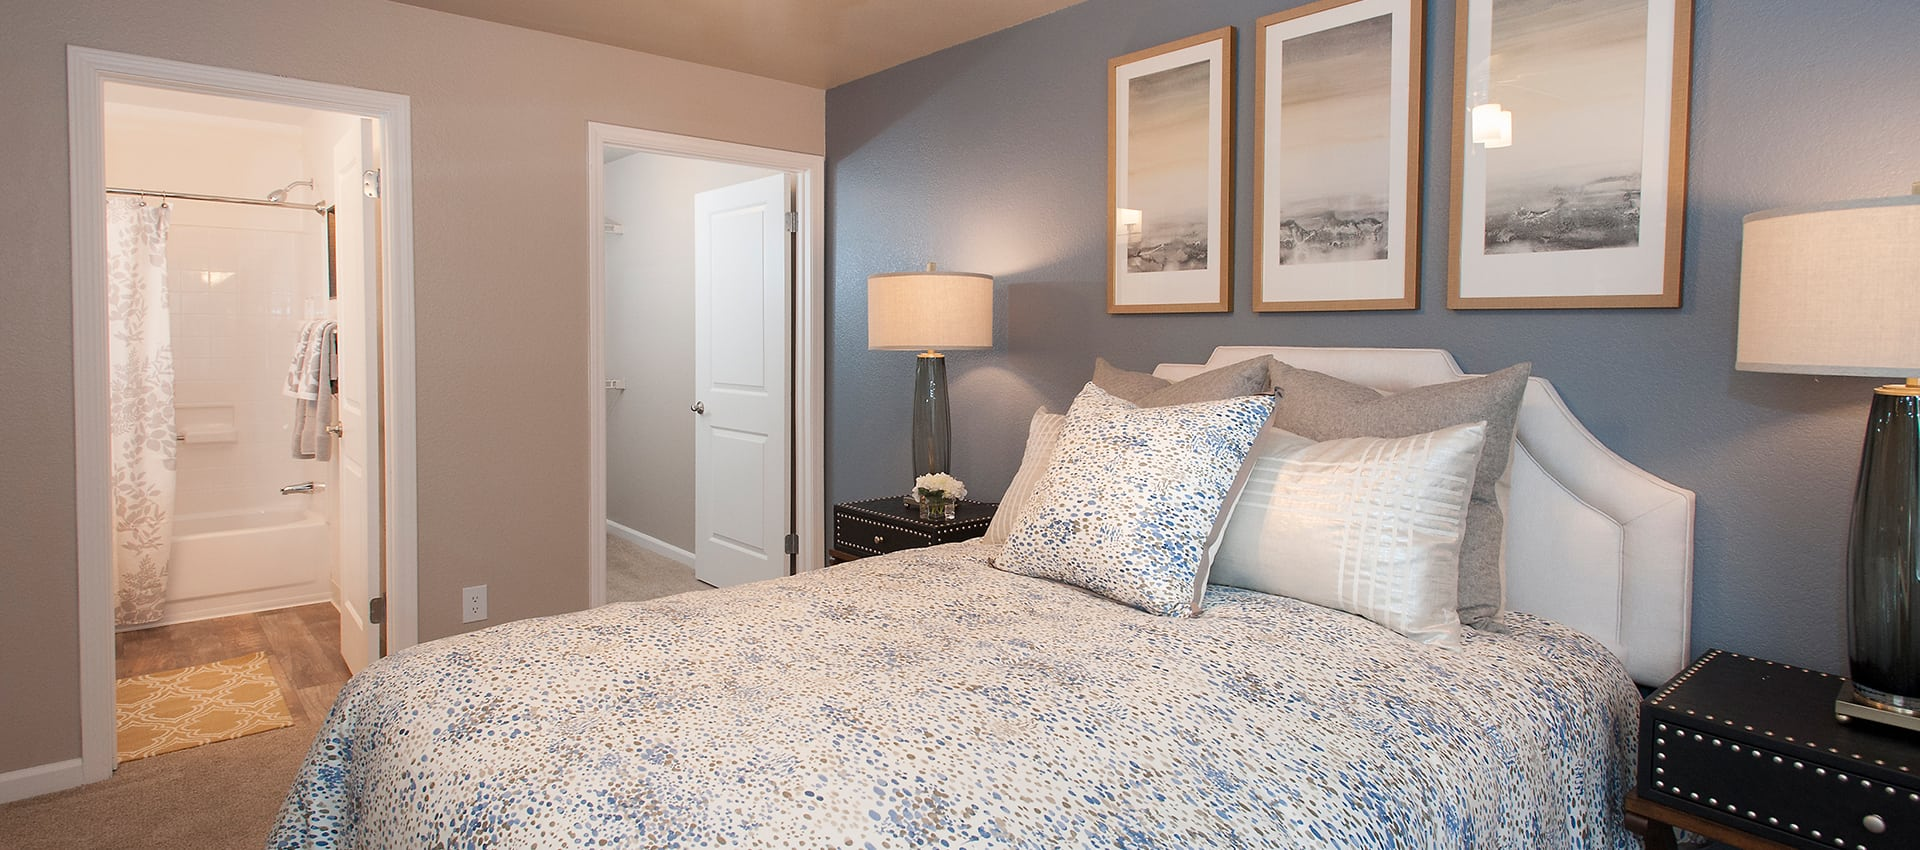 Bedroom at Reserve at Capital Center Apartment Homes in Rancho Cordova, CA